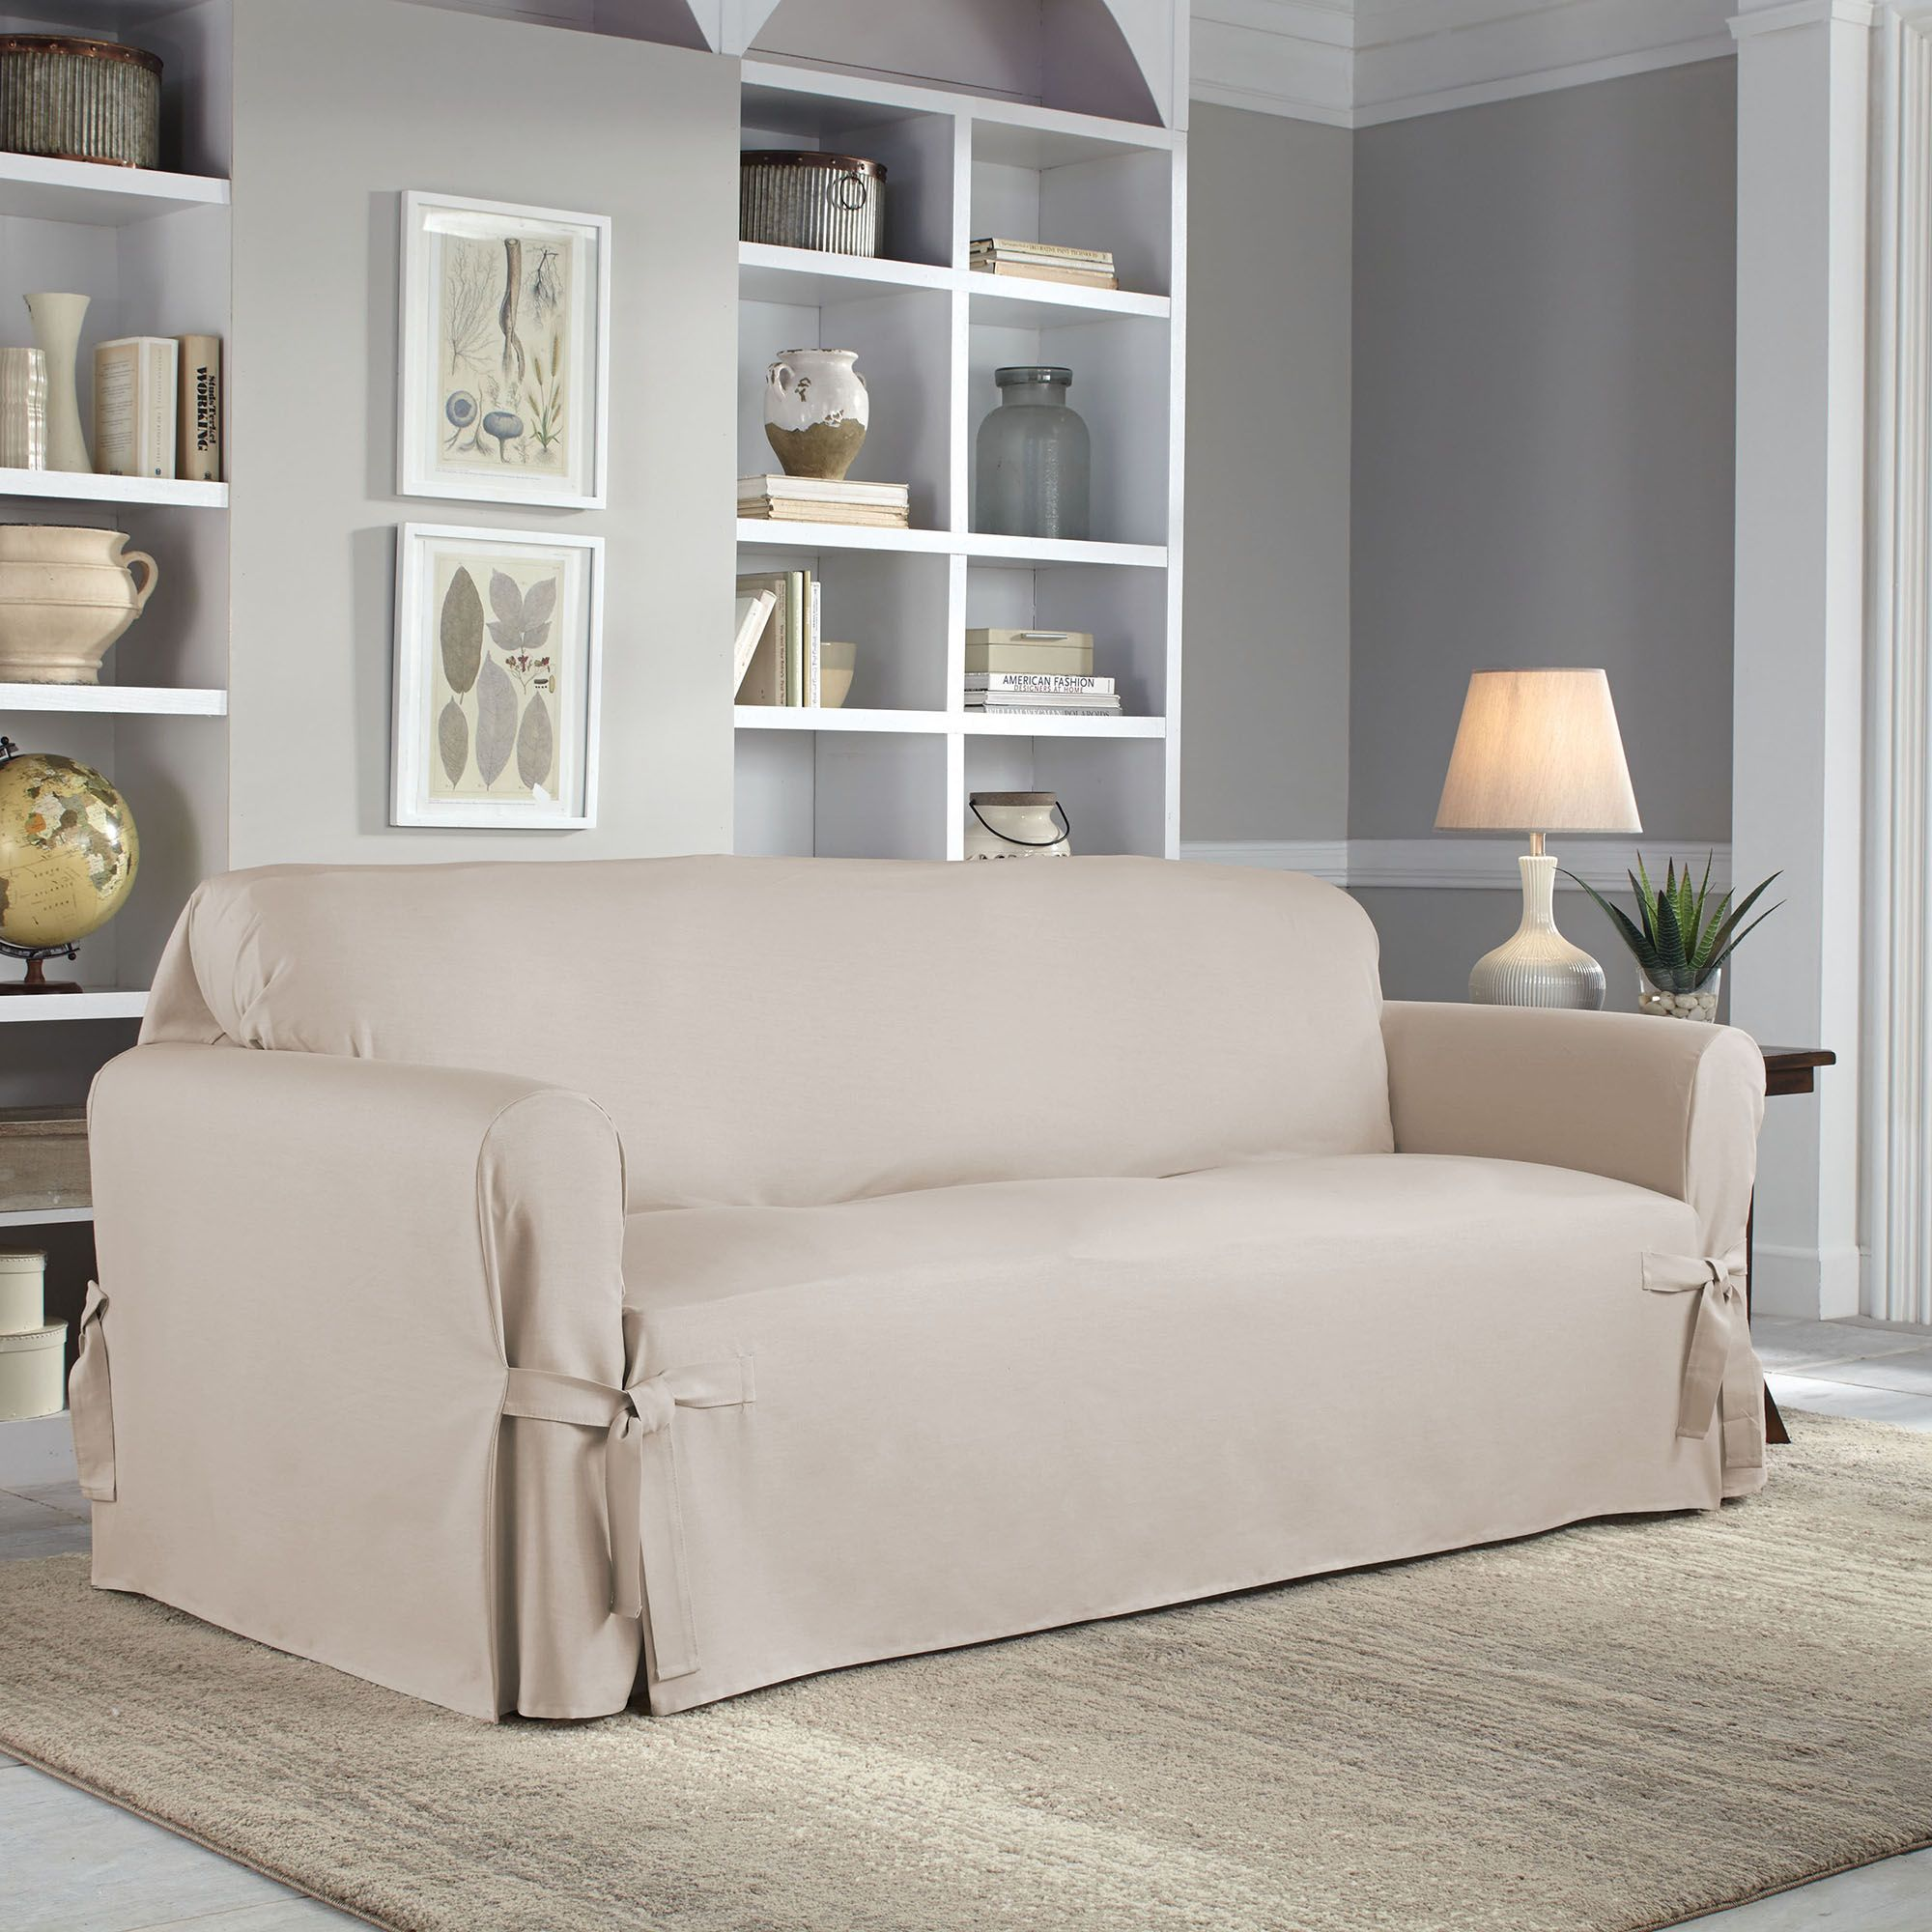 Sofa Slipcovers Couch Covers And Furniture Throws Bed Bath Beyond ~ White Linen Sofa Slipcover